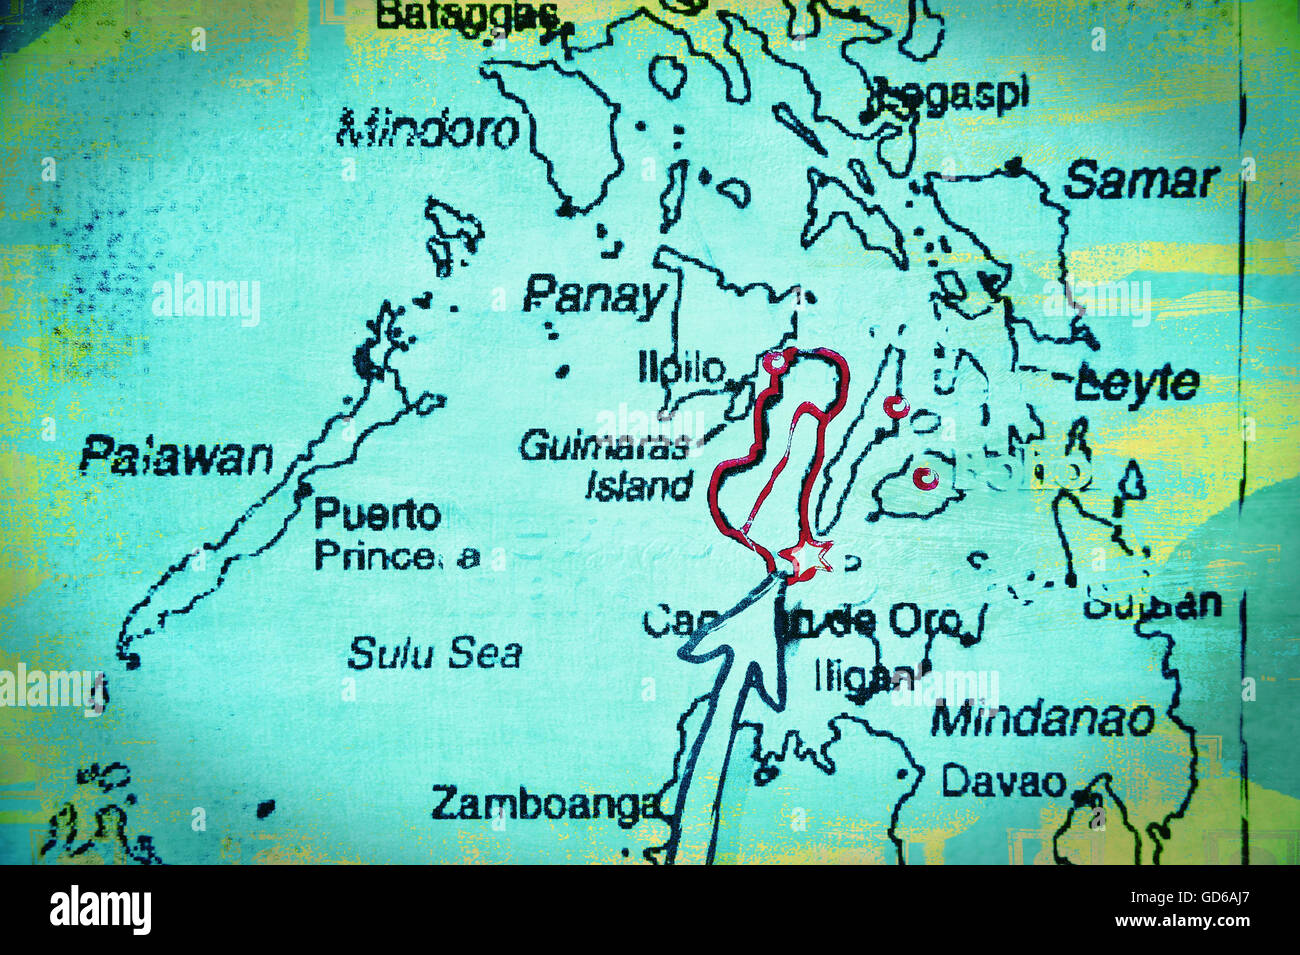 Map of the Visayas, Philippines, Asia. - Stock Image